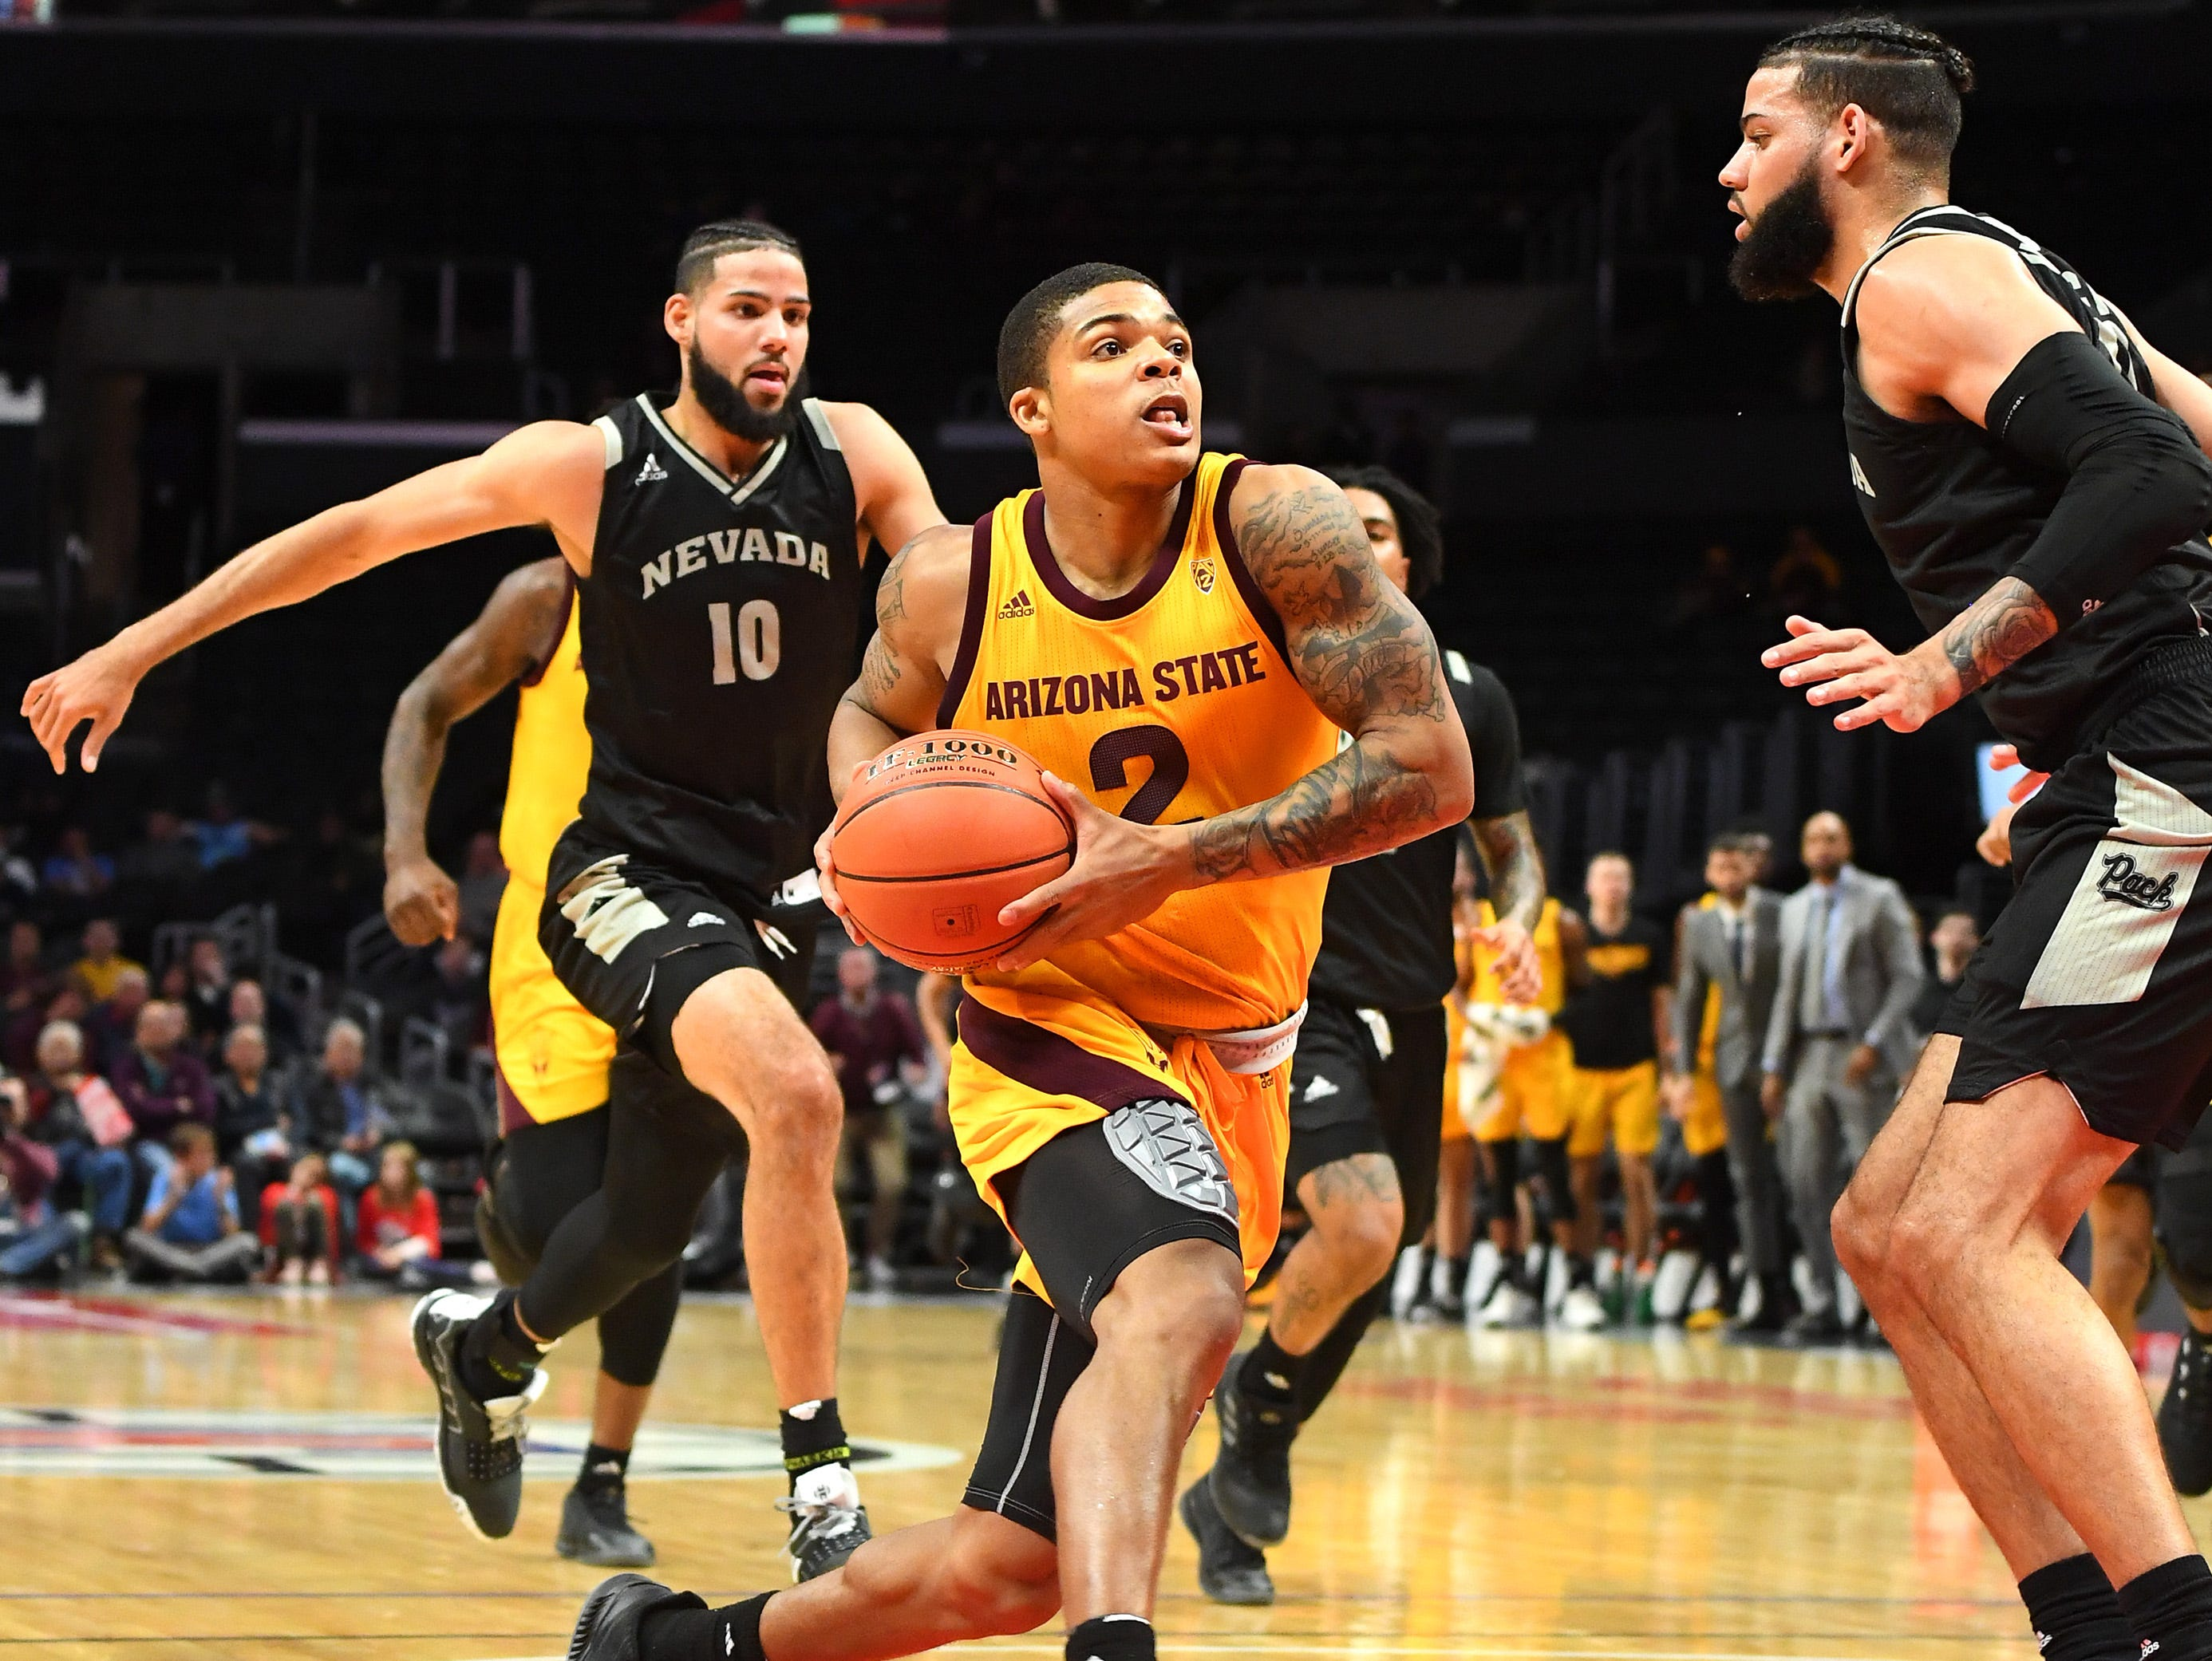 Dec 7, 2018; Los Angeles, CA, USA; Arizona State Sun Devils guard Rob Edwards (2) gets past Nevada Wolf Pack forward Cody Martin (11) and forward Caleb Martin (10) for a basket in the first half of the game at Staples Center. Mandatory Credit: Jayne Kamin-Oncea-USA TODAY Sports